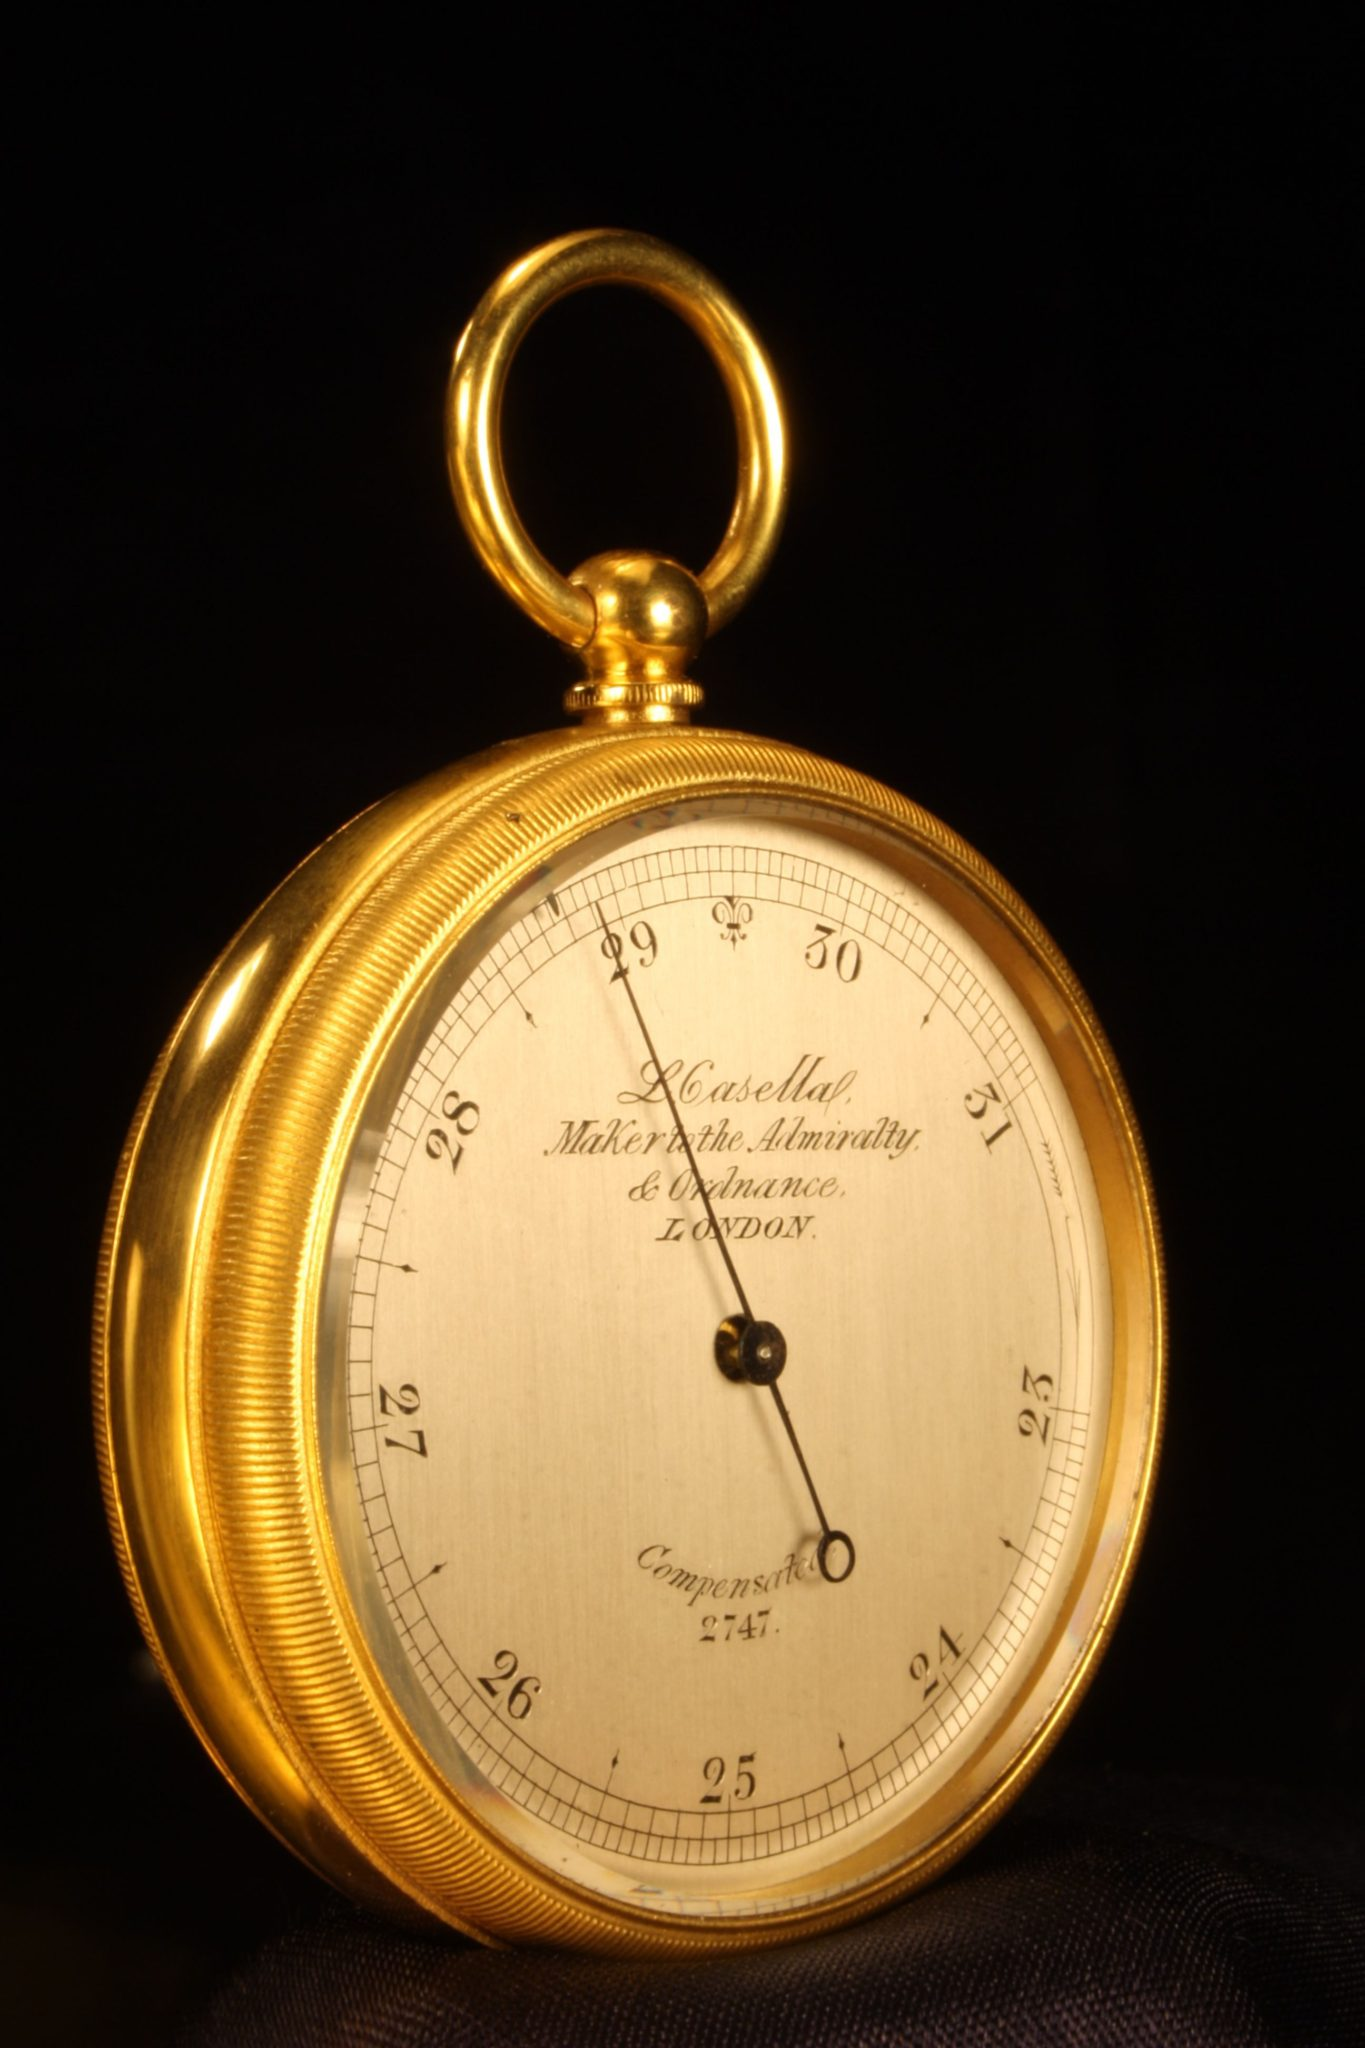 Image of Casella Pocket Barometer No 2747